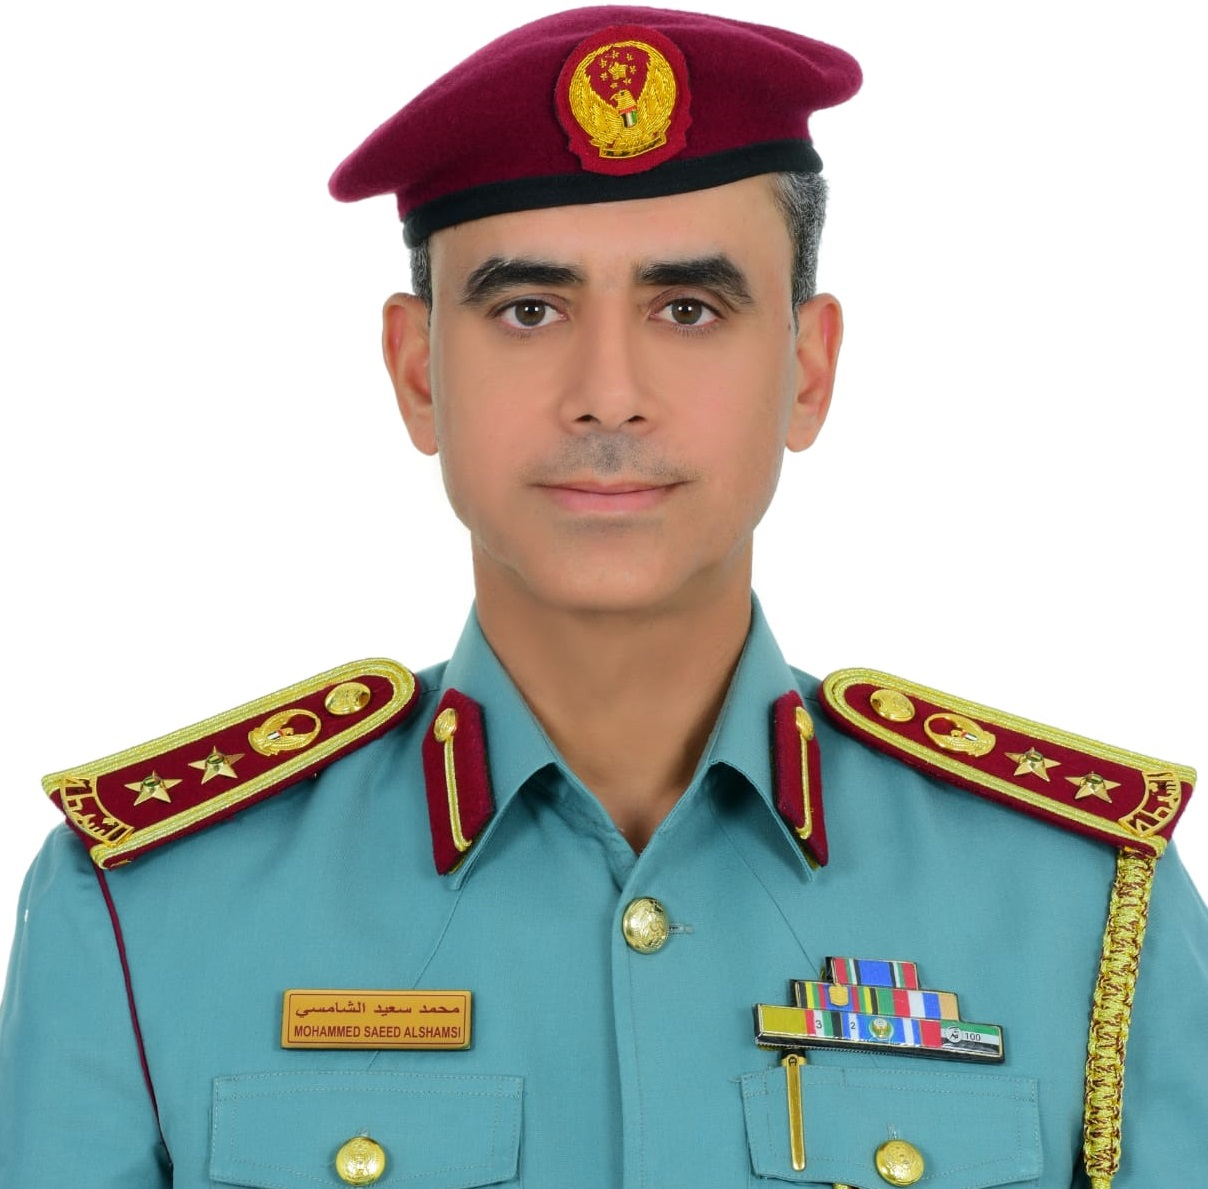 Colonel Mohamed Saeed